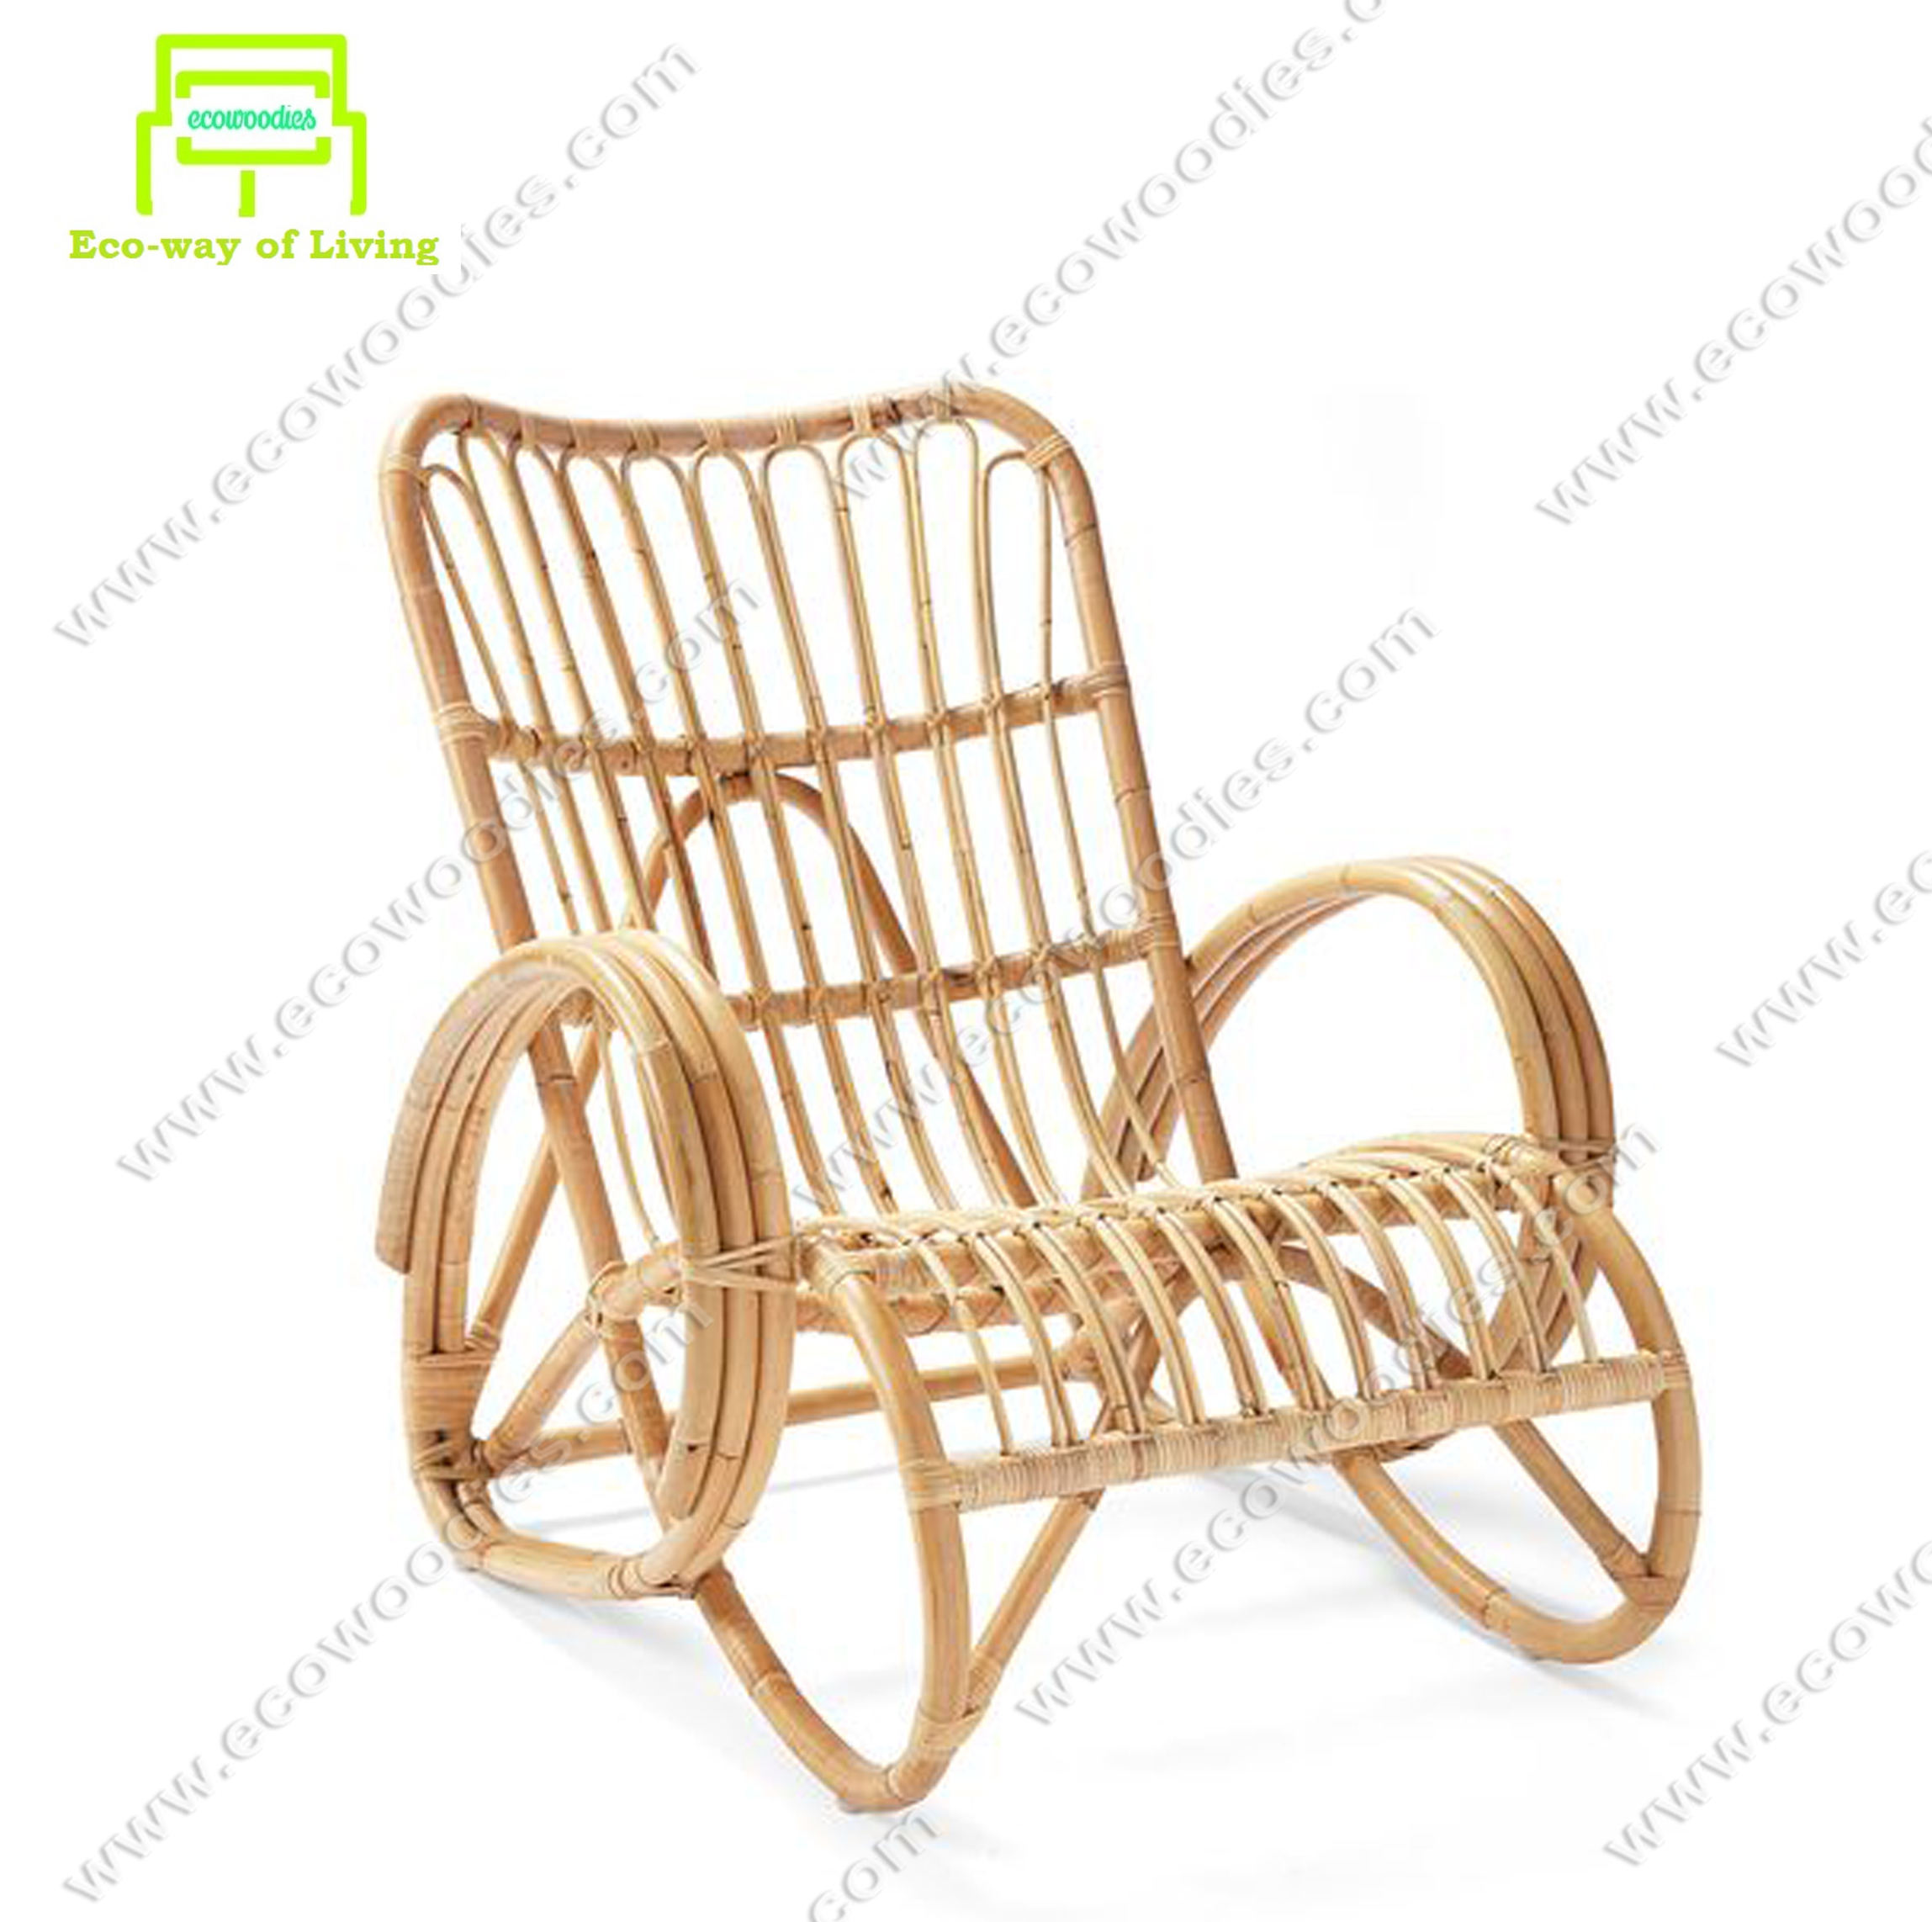 2020 traditionnelle rocking Chair adultes âgés bambou canapé chaise accoudoir en bois gardensets salon loisirs pliant automatique